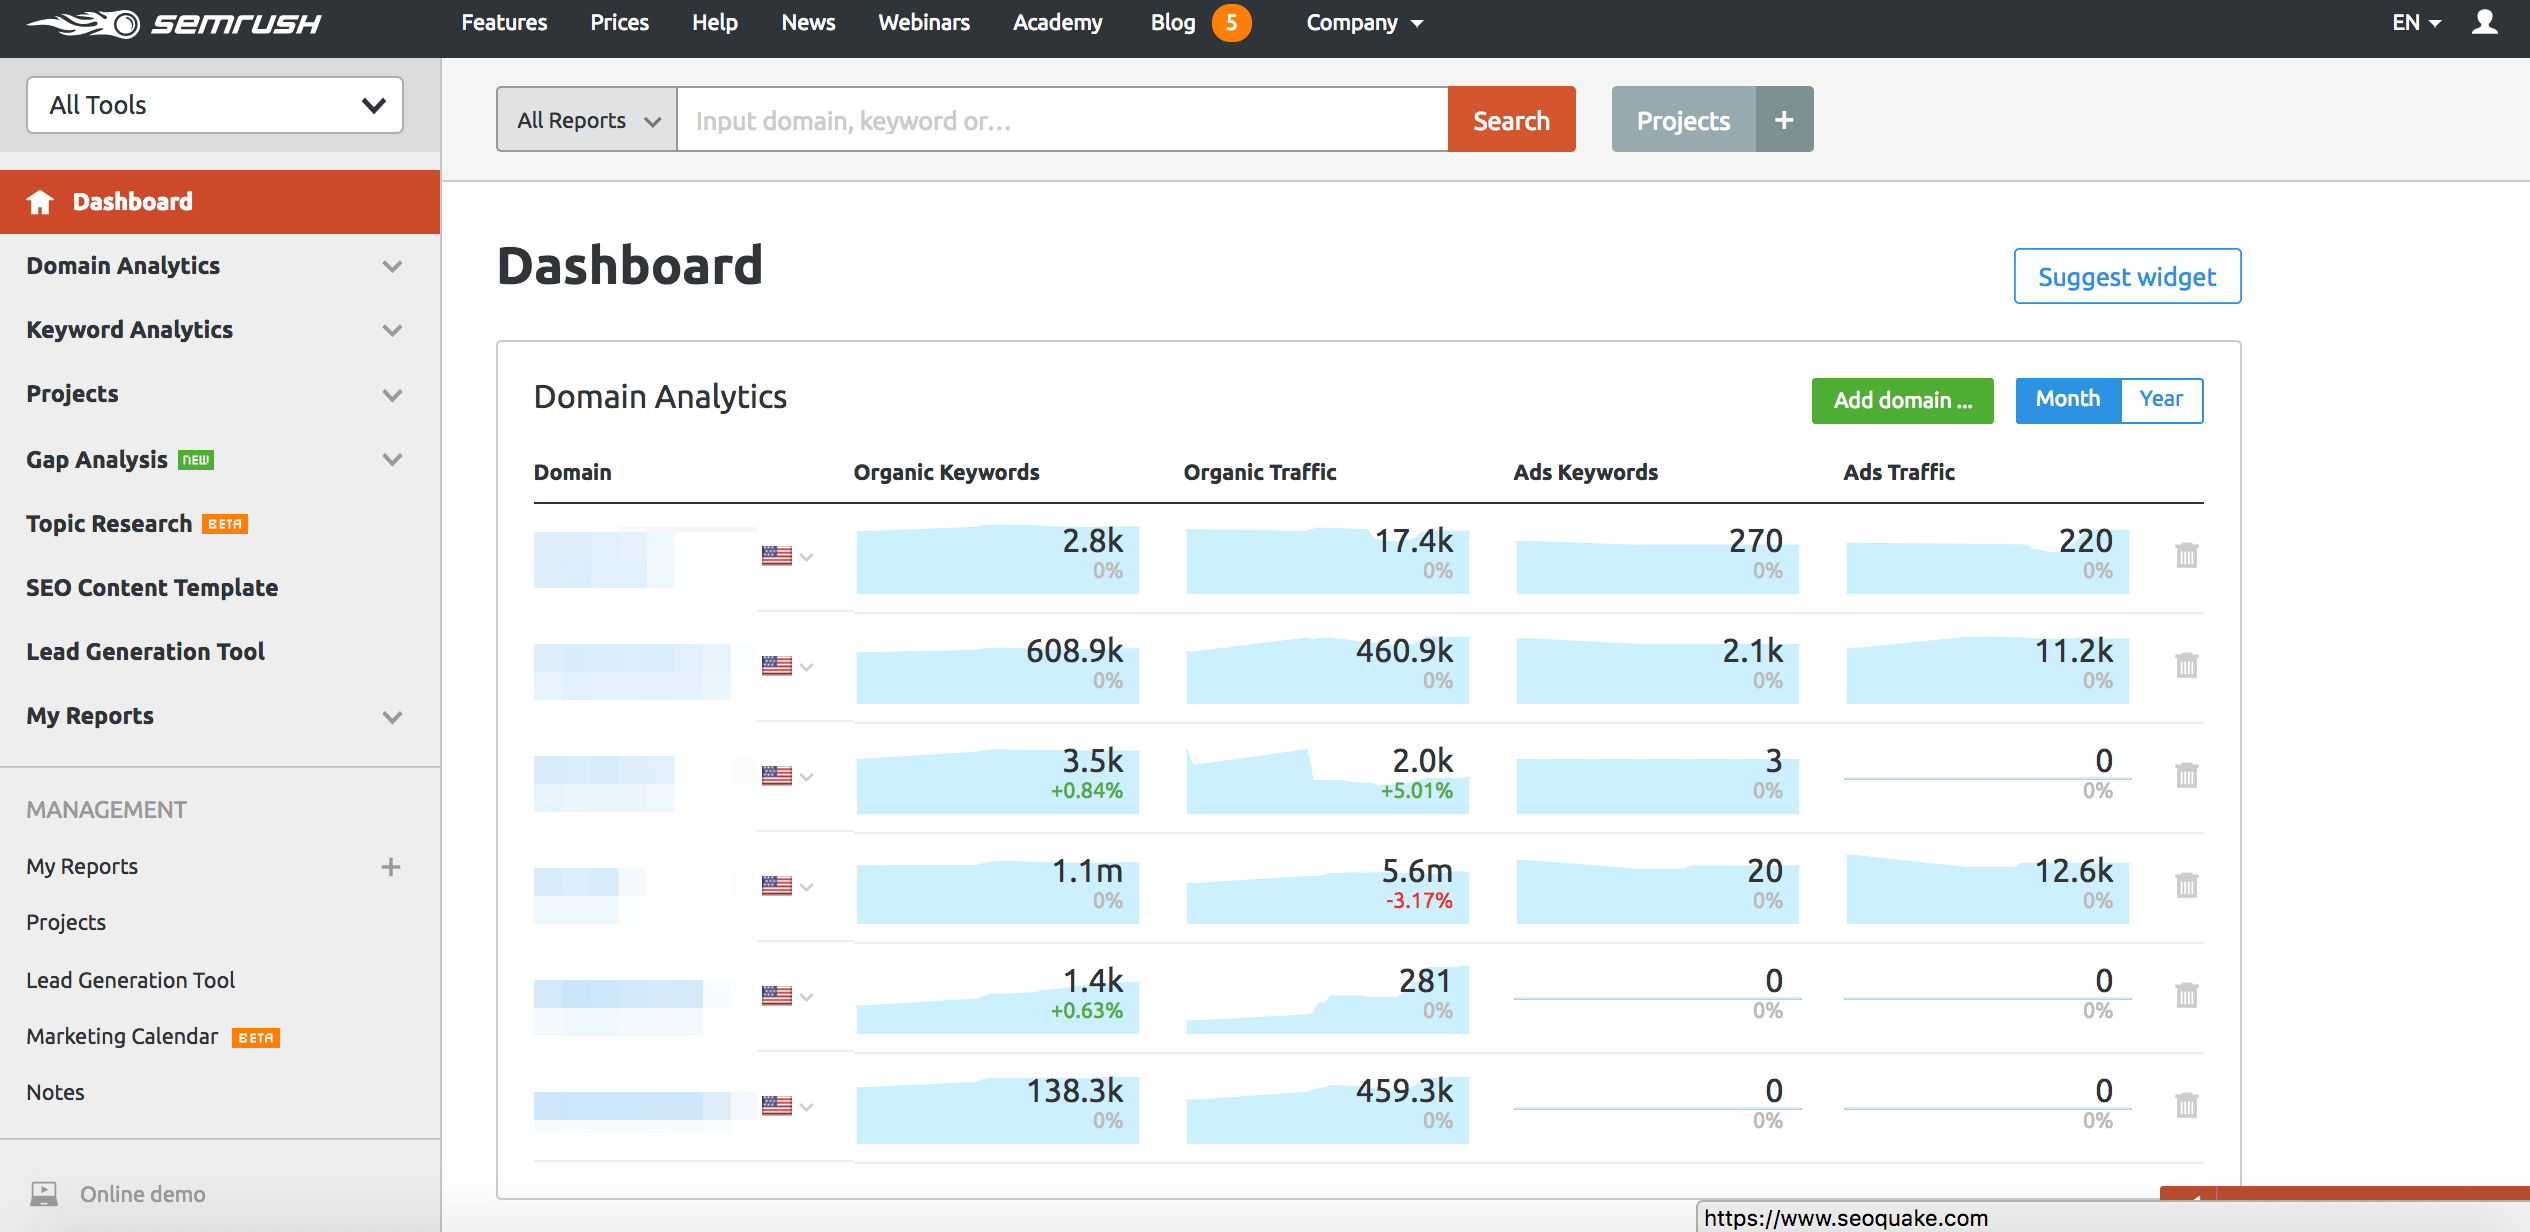 See This Report on Semrush Academy